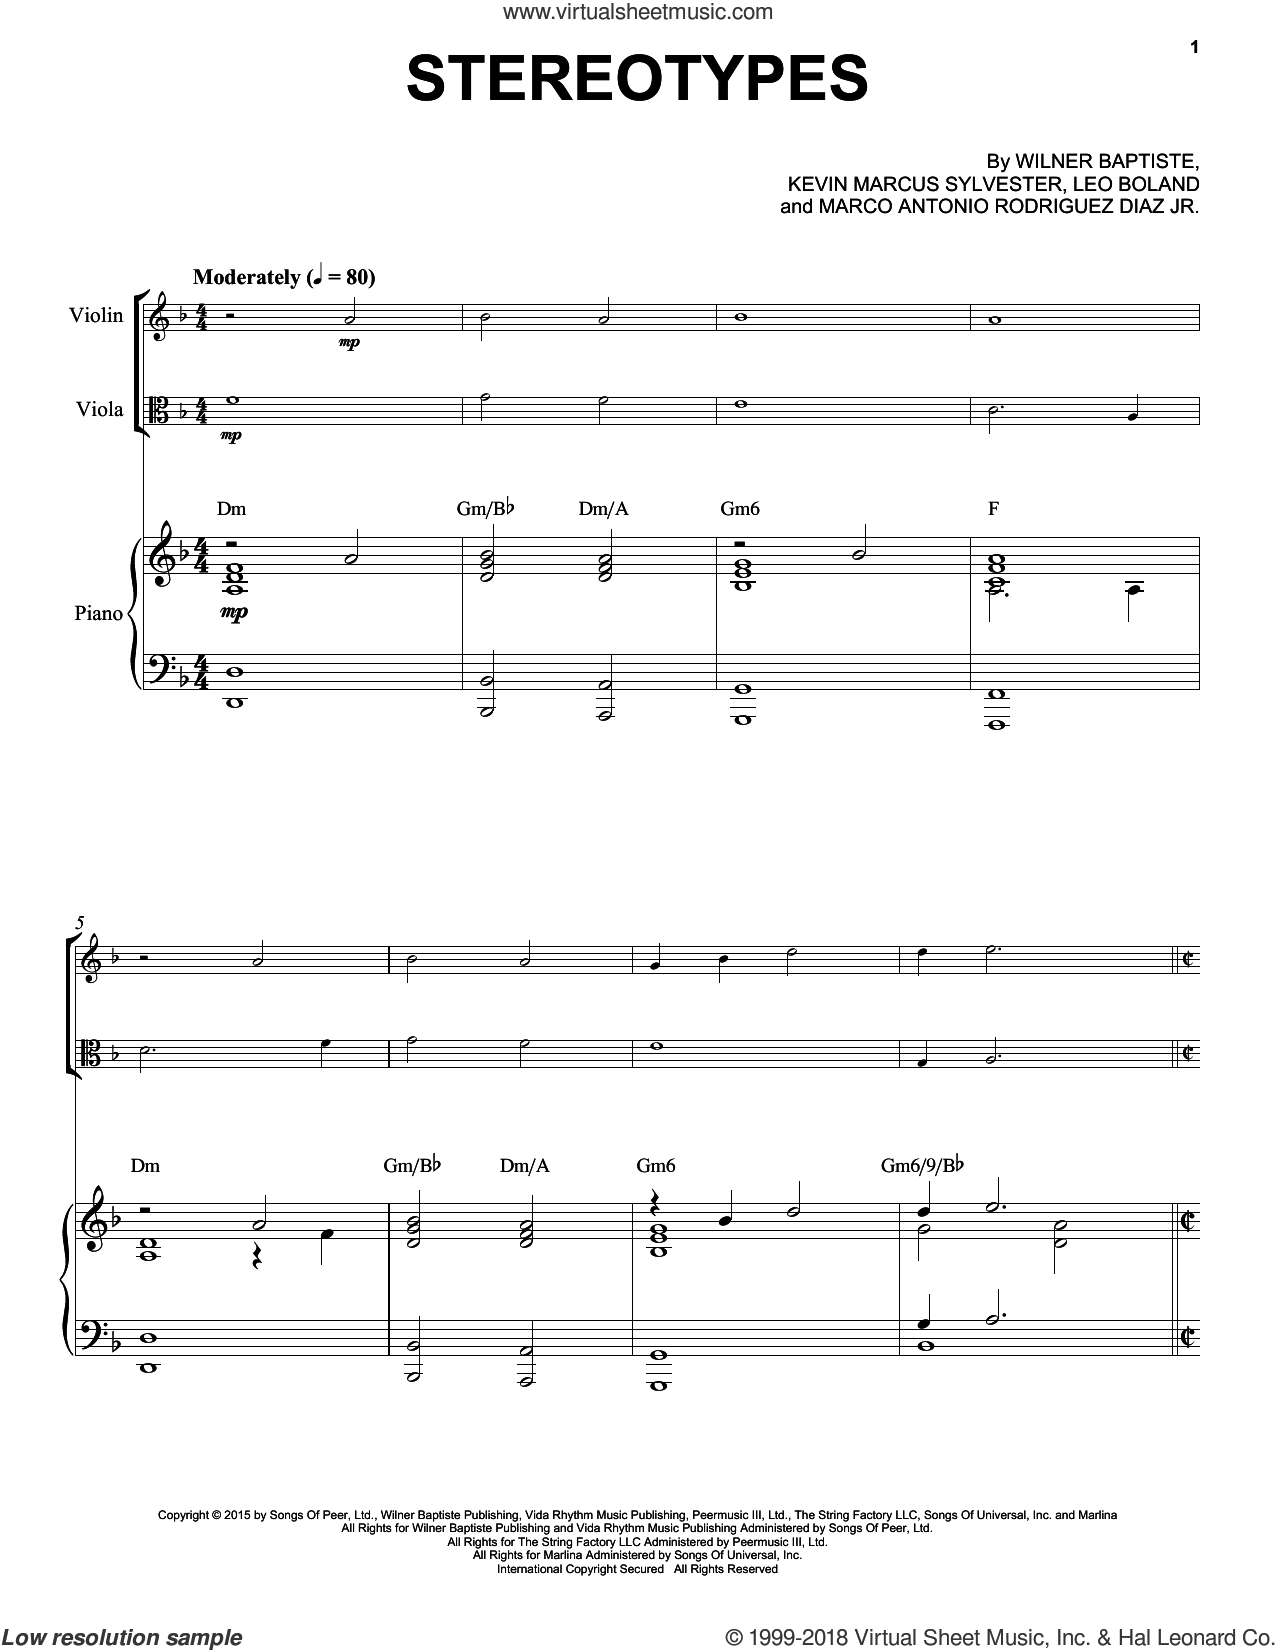 Stereotypes sheet music for viola, violin and piano by Black Violin, Kevin Marcus Sylvester, Leo Boland, Marco Antonio Rodriguez Diaz and Wilner Baptiste, intermediate skill level